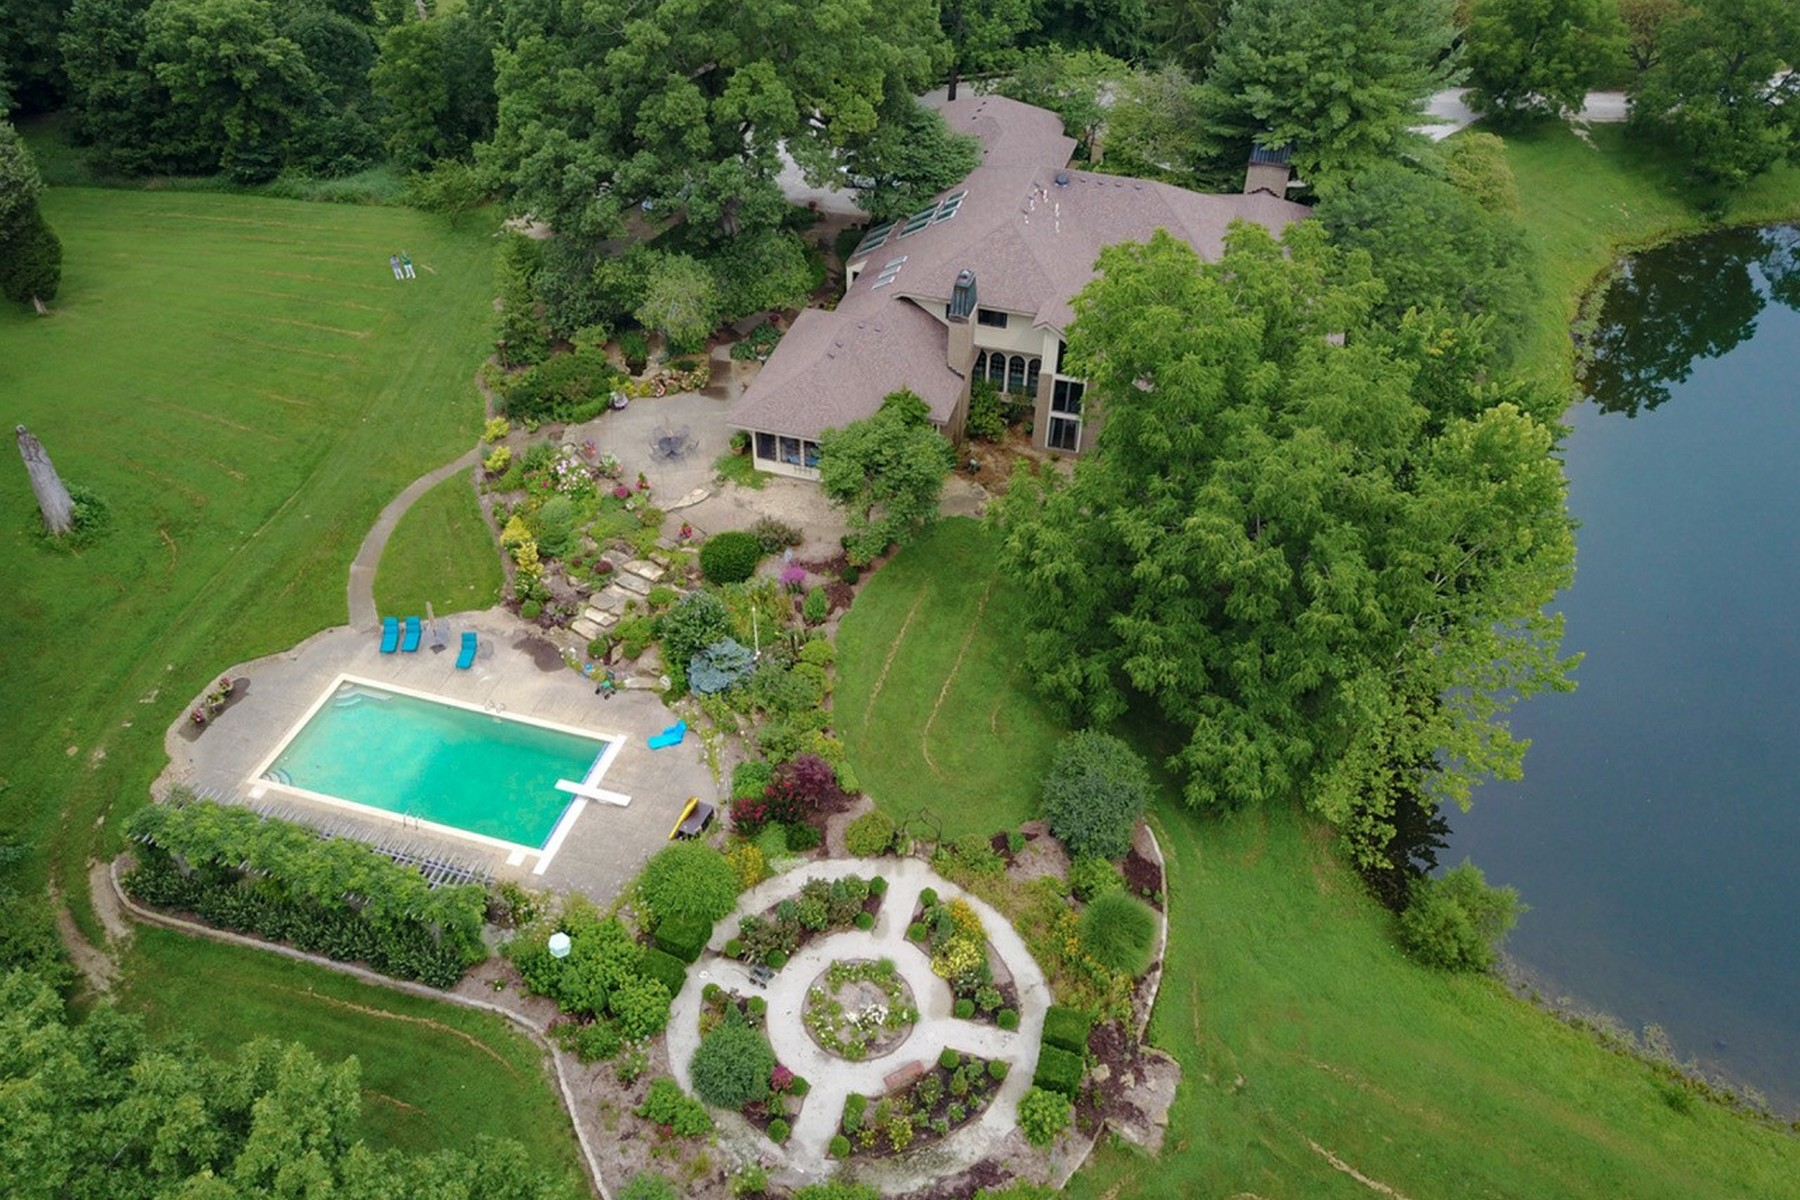 Single Family Homes for Active at Scenic 60 Acre Equestrian Estate 2225 E Maple Turn Road Martinsville, Indiana 46151 United States